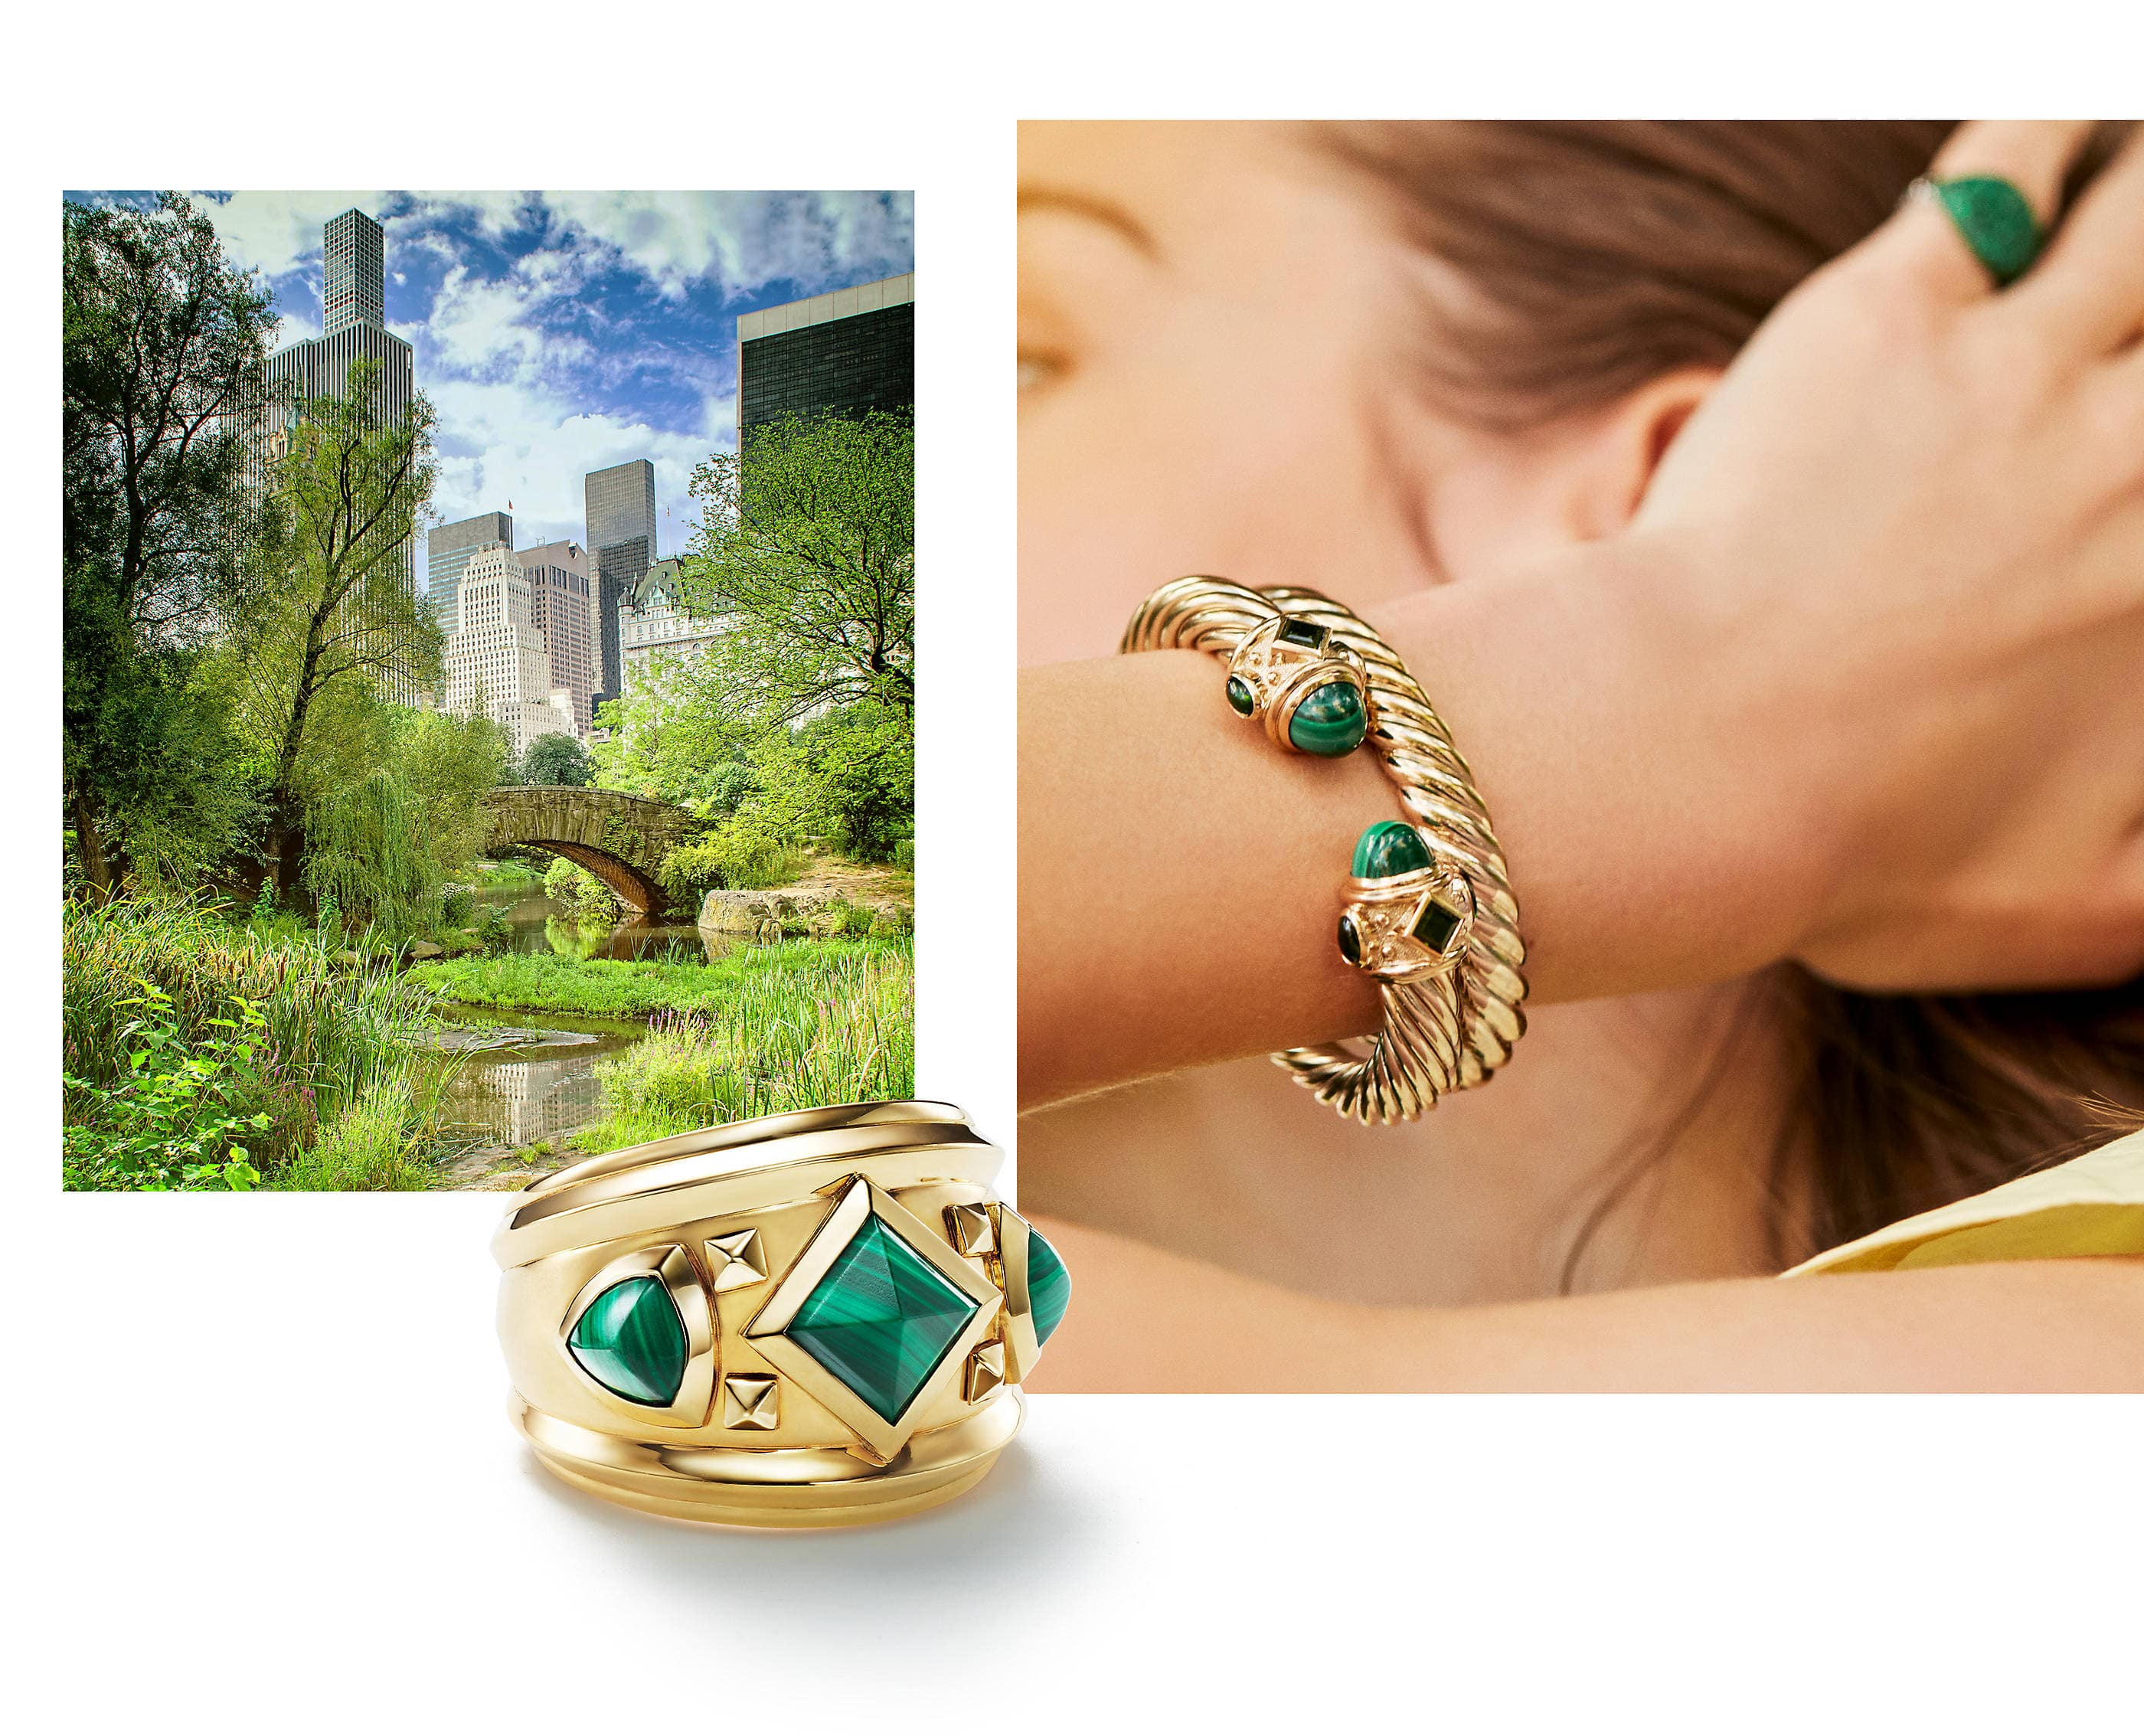 An image of David Yurman Renaissance and Sculpted Cable bracelets along with a pinky ring. The bracelets are crafted from 18K yellow gold with or without malachite and emeralds. The pinky ring is crafted from 18K white gold with pavé emeralds. In between both photos is a David Yurman Renaissance ring with a soft shadow. The ring is crafted from 18K yellow gold with pyramid-shaped malachite stones.